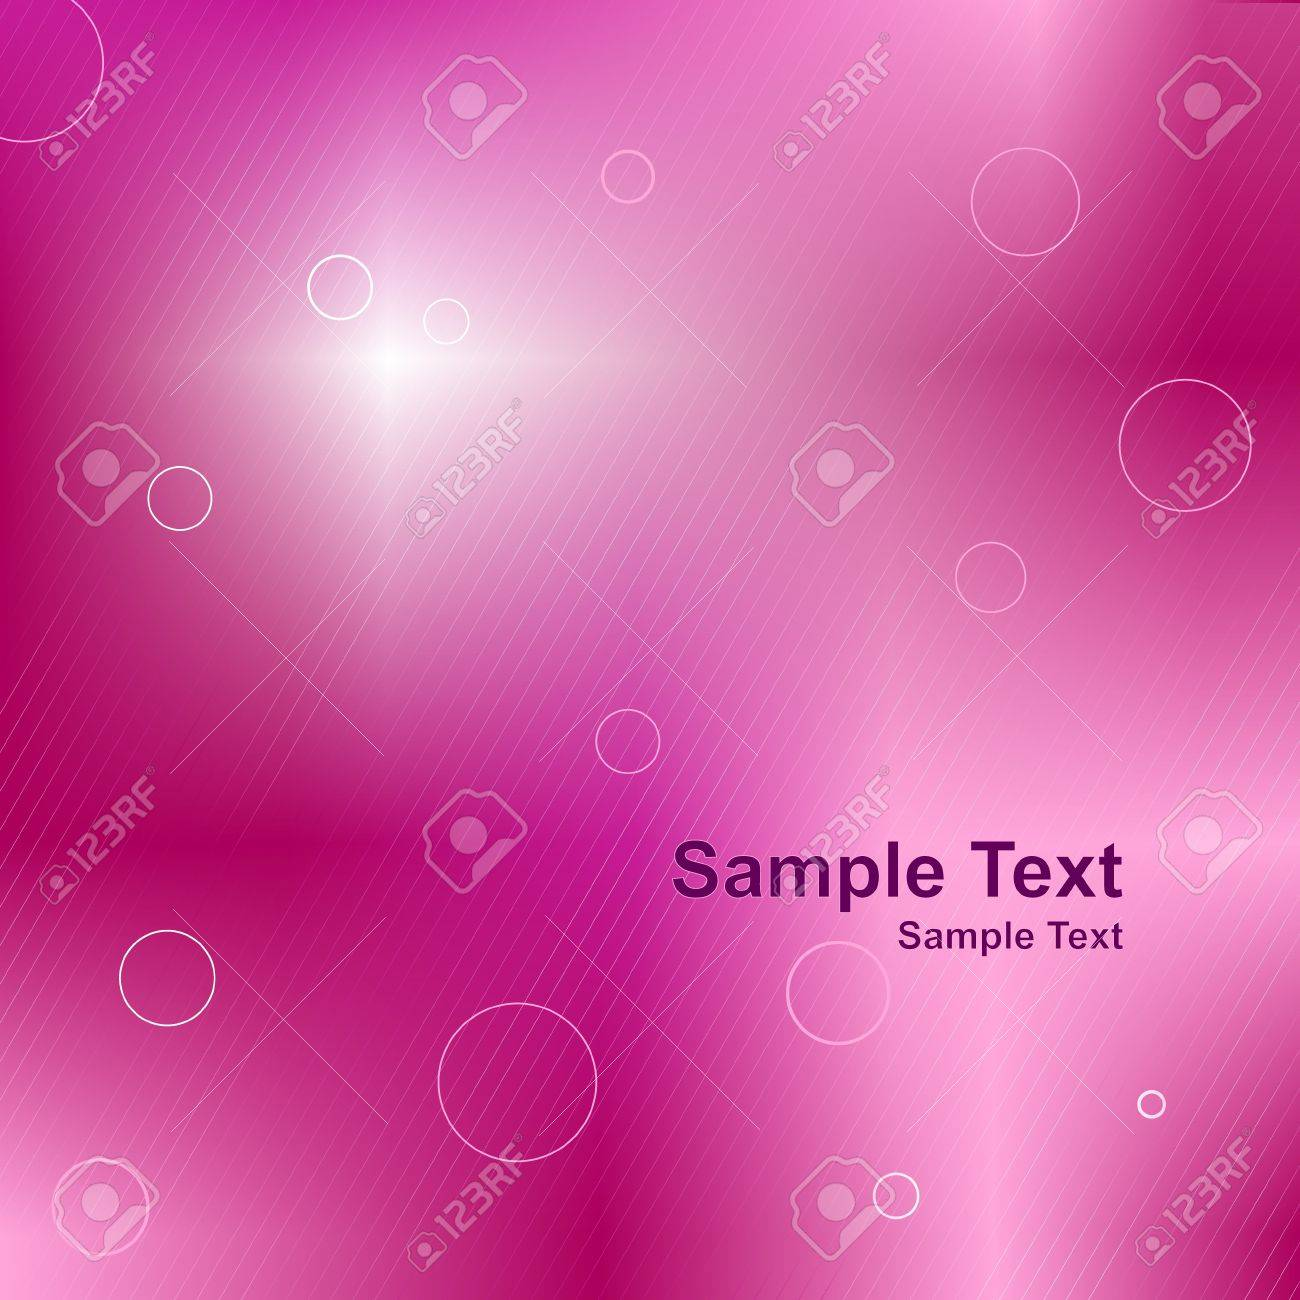 Background image o linear gradient - Abstract Pink Purple Fantasy Background With Copy Space Use Of Linear Gradients Blended Into